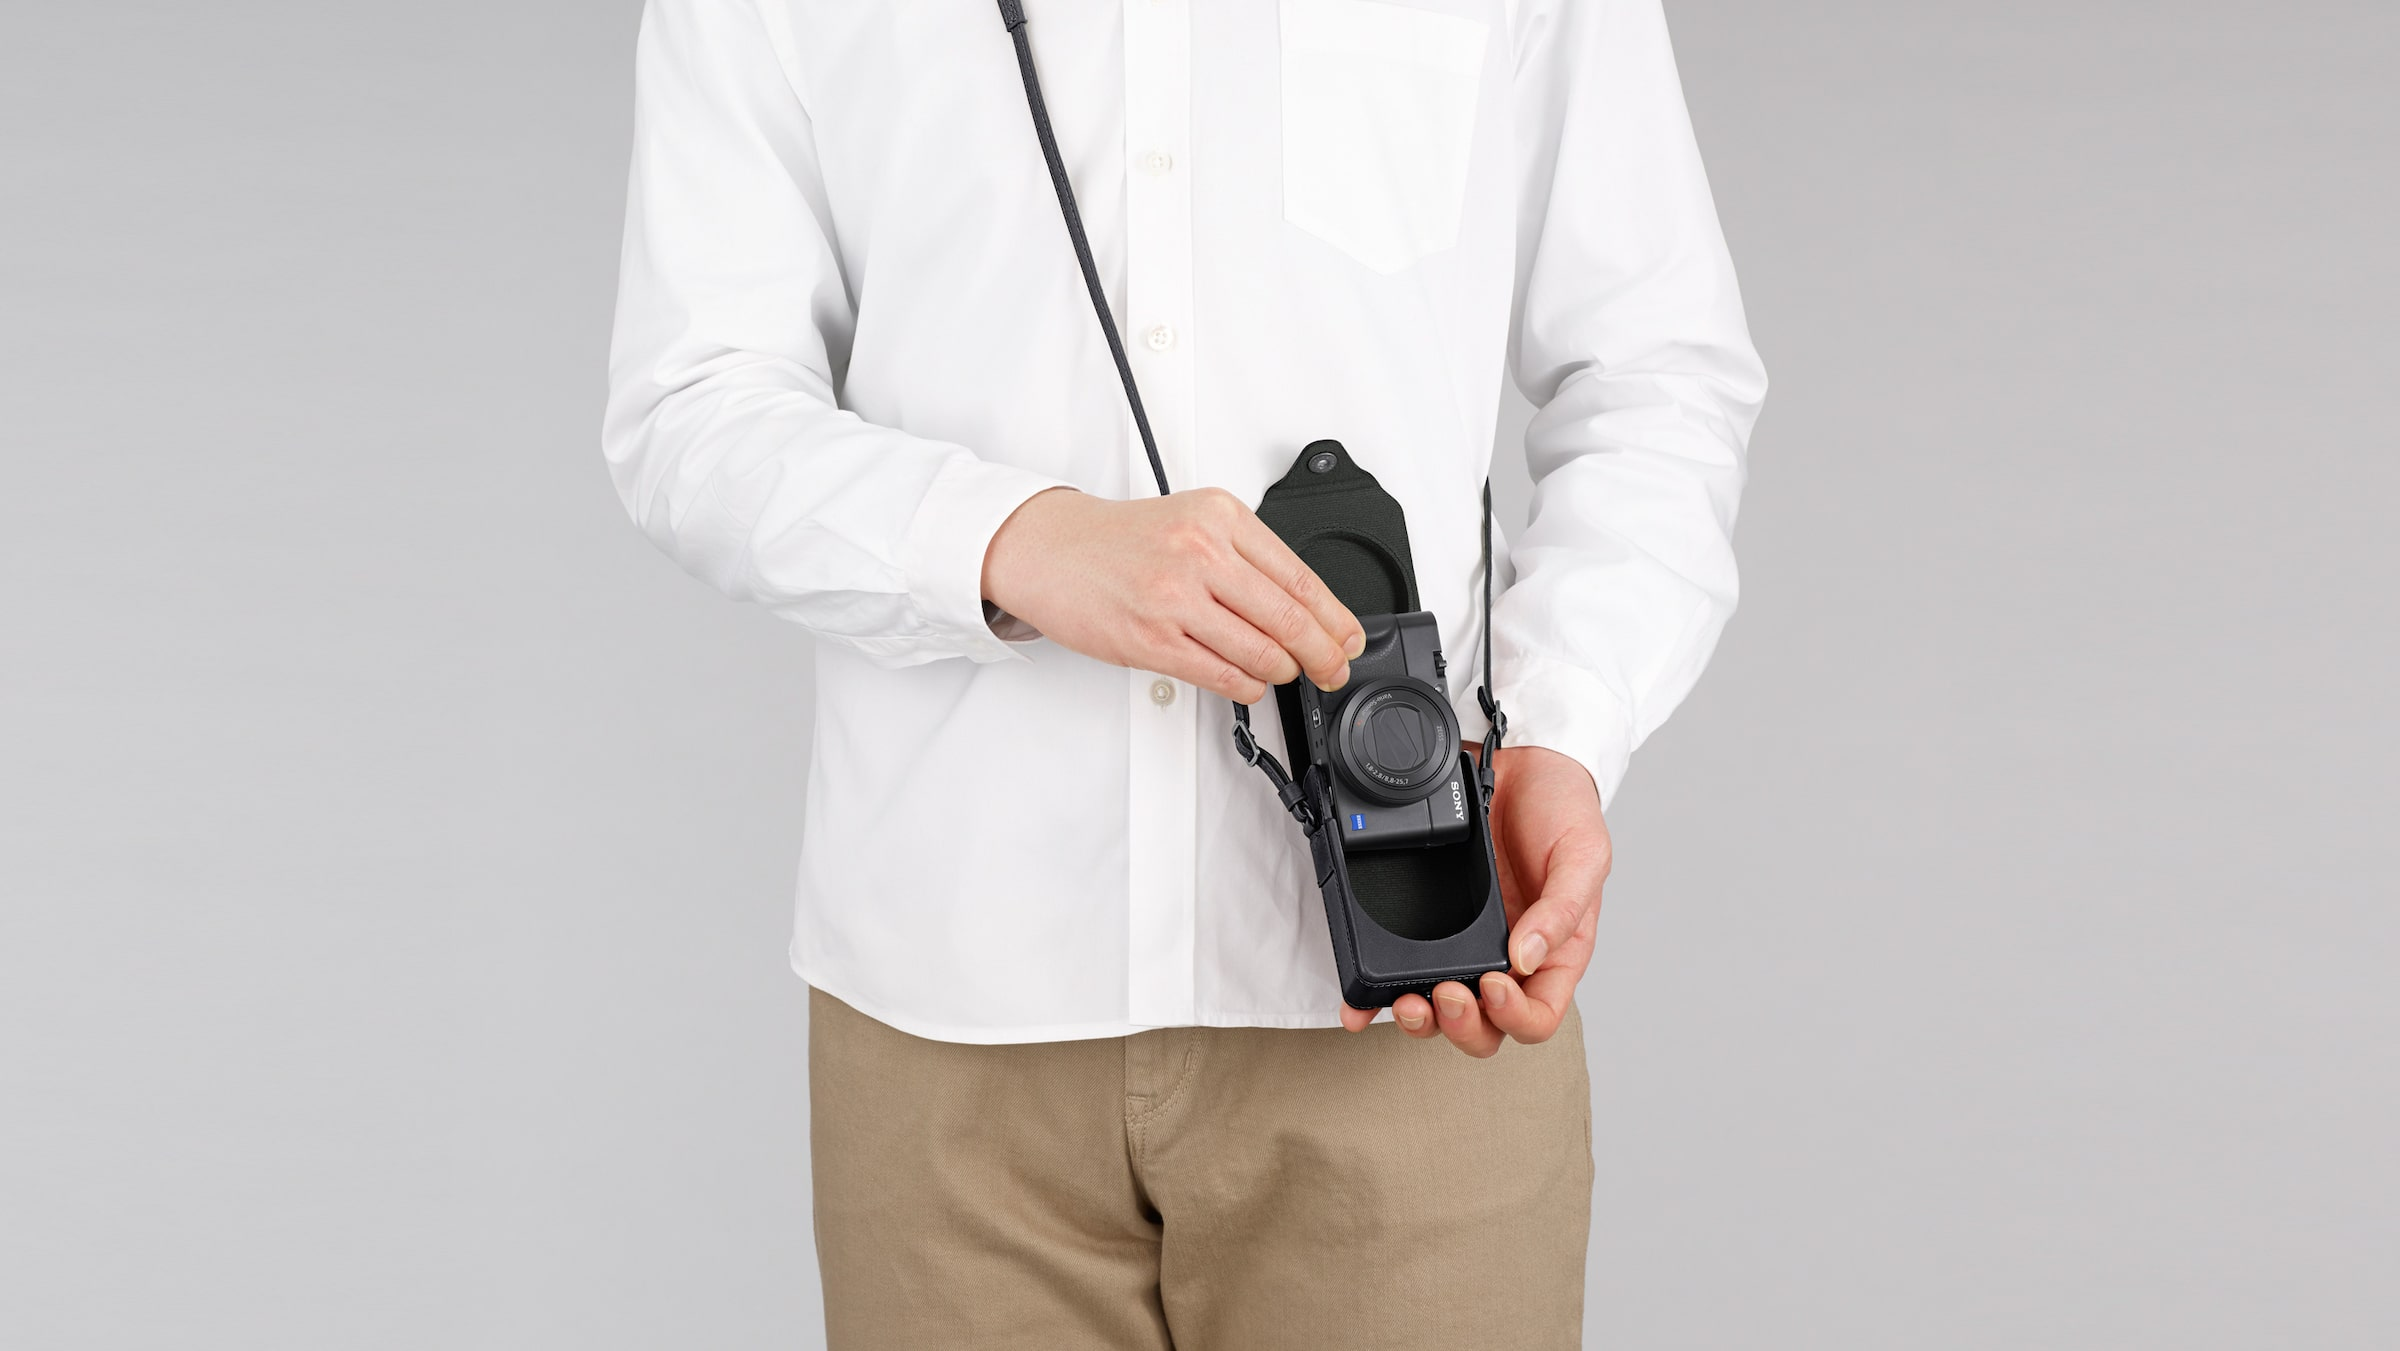 LCS-RXG Soft Carrying Case for RX100 series cameras in action